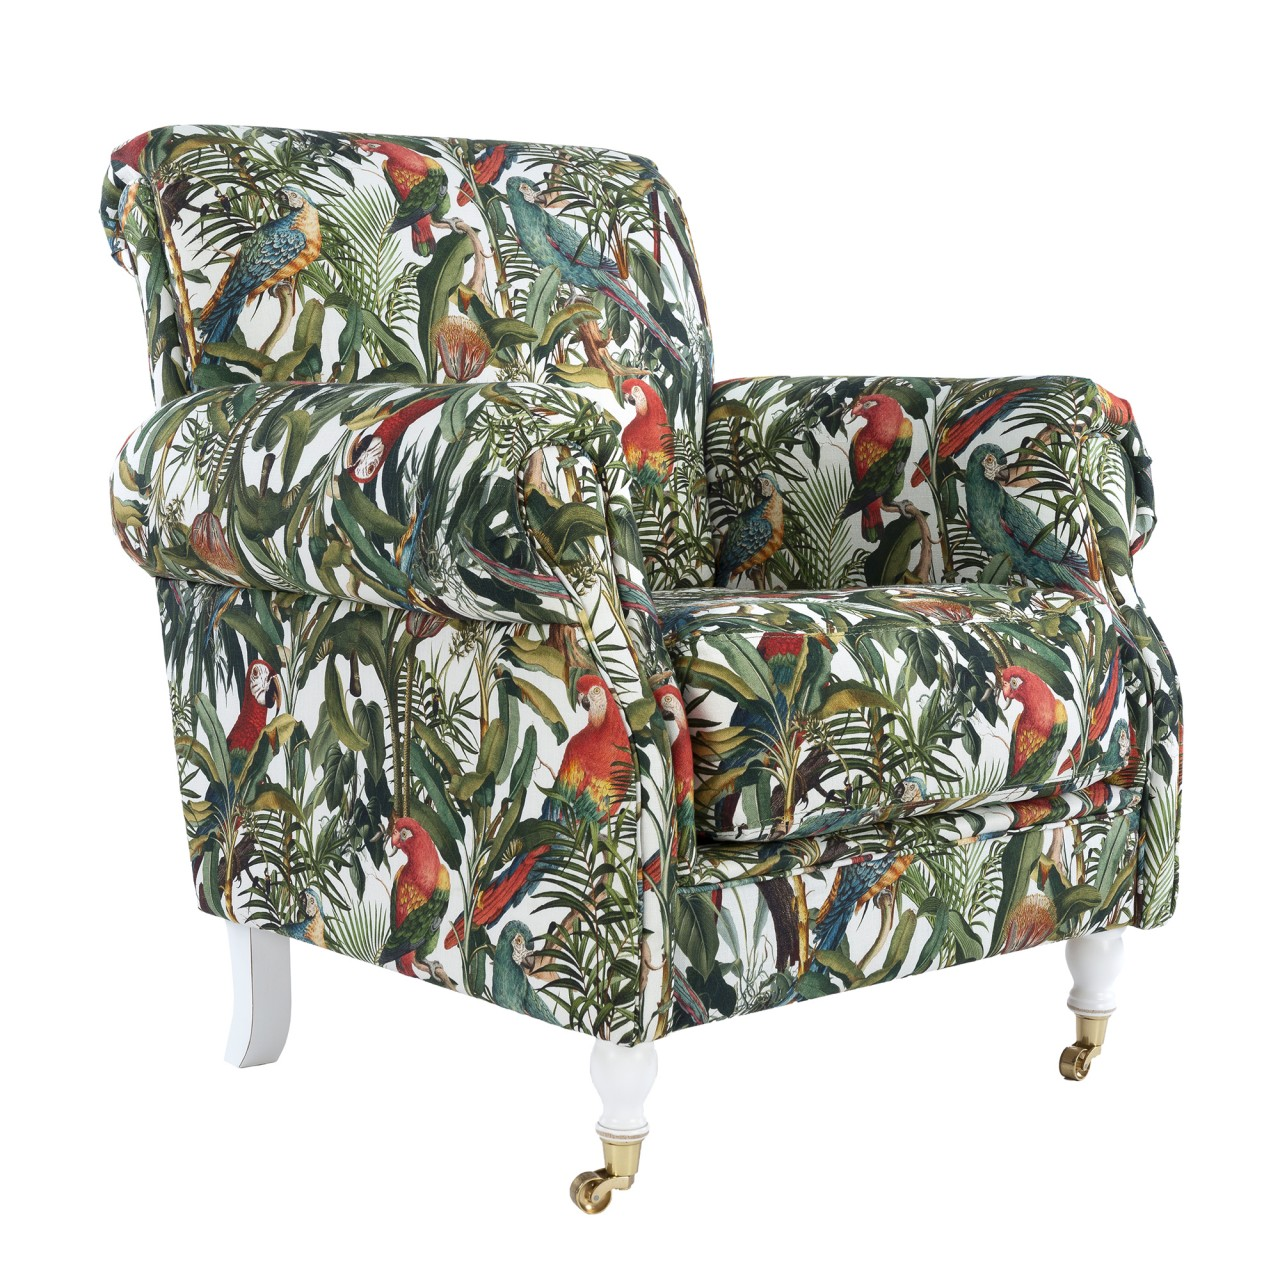 KINGSTON Chair - PARROTS OF BRASIL Linen